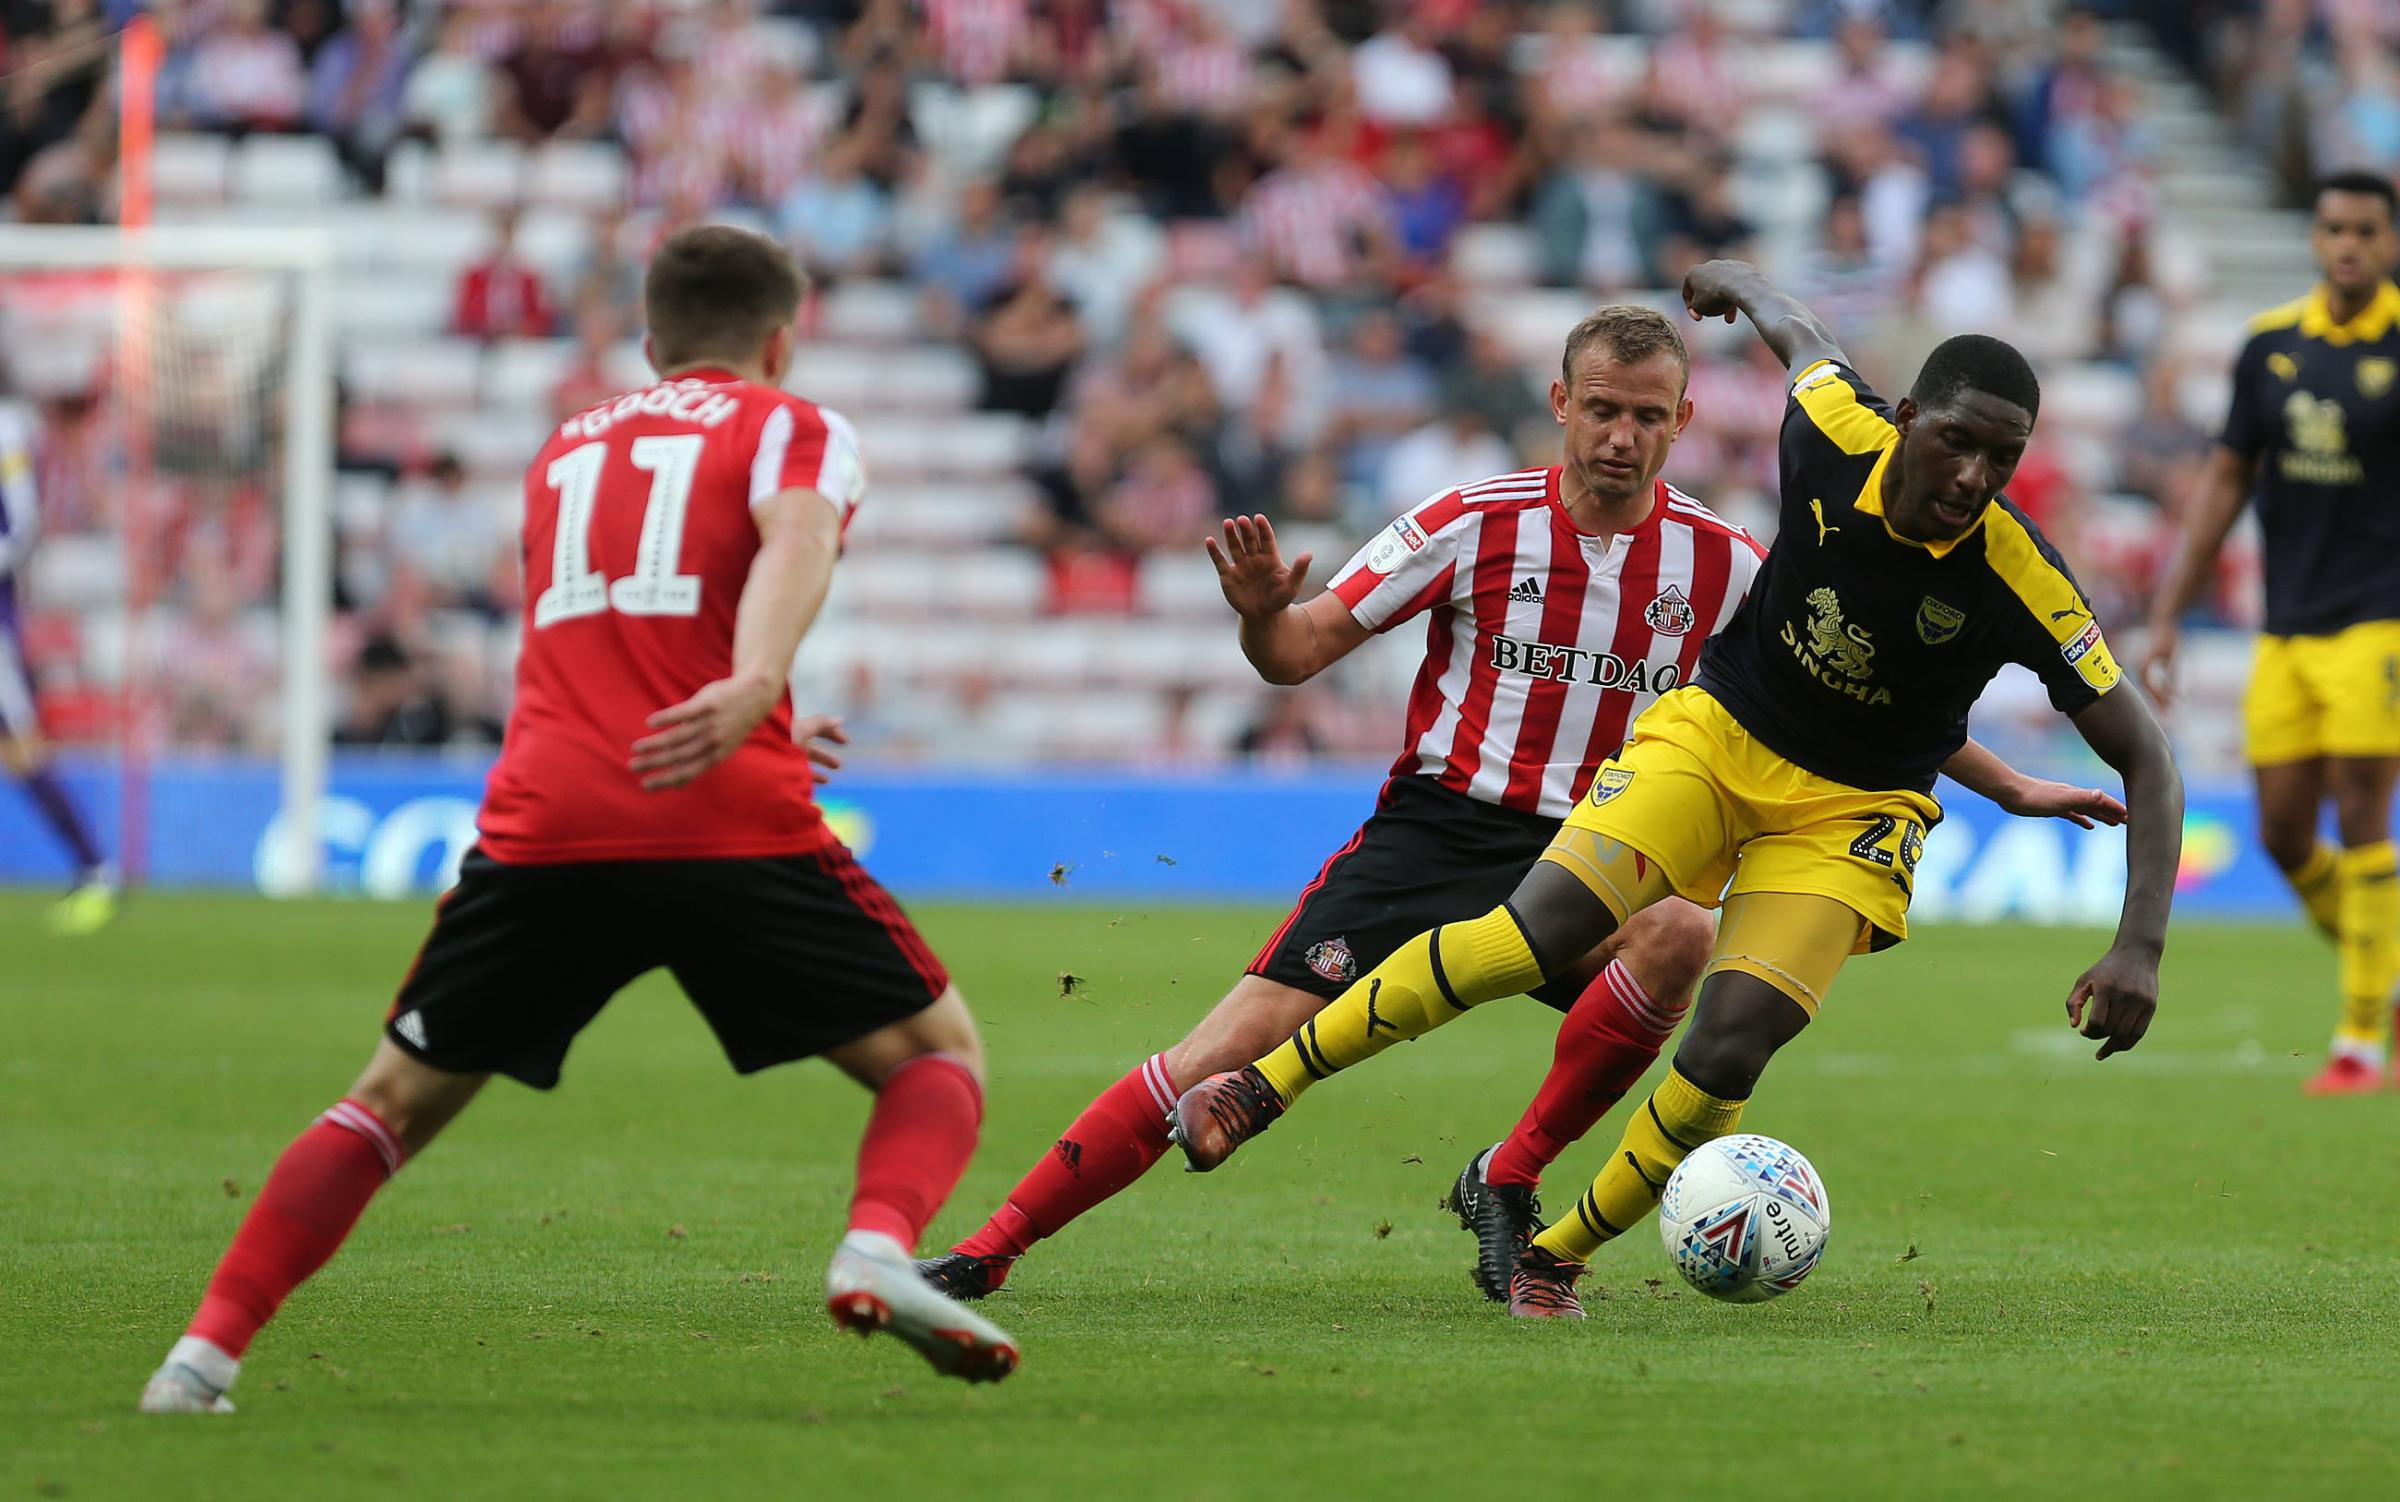 Oxford United 2019/20 fixtures - U's away to Sunderland on opening day